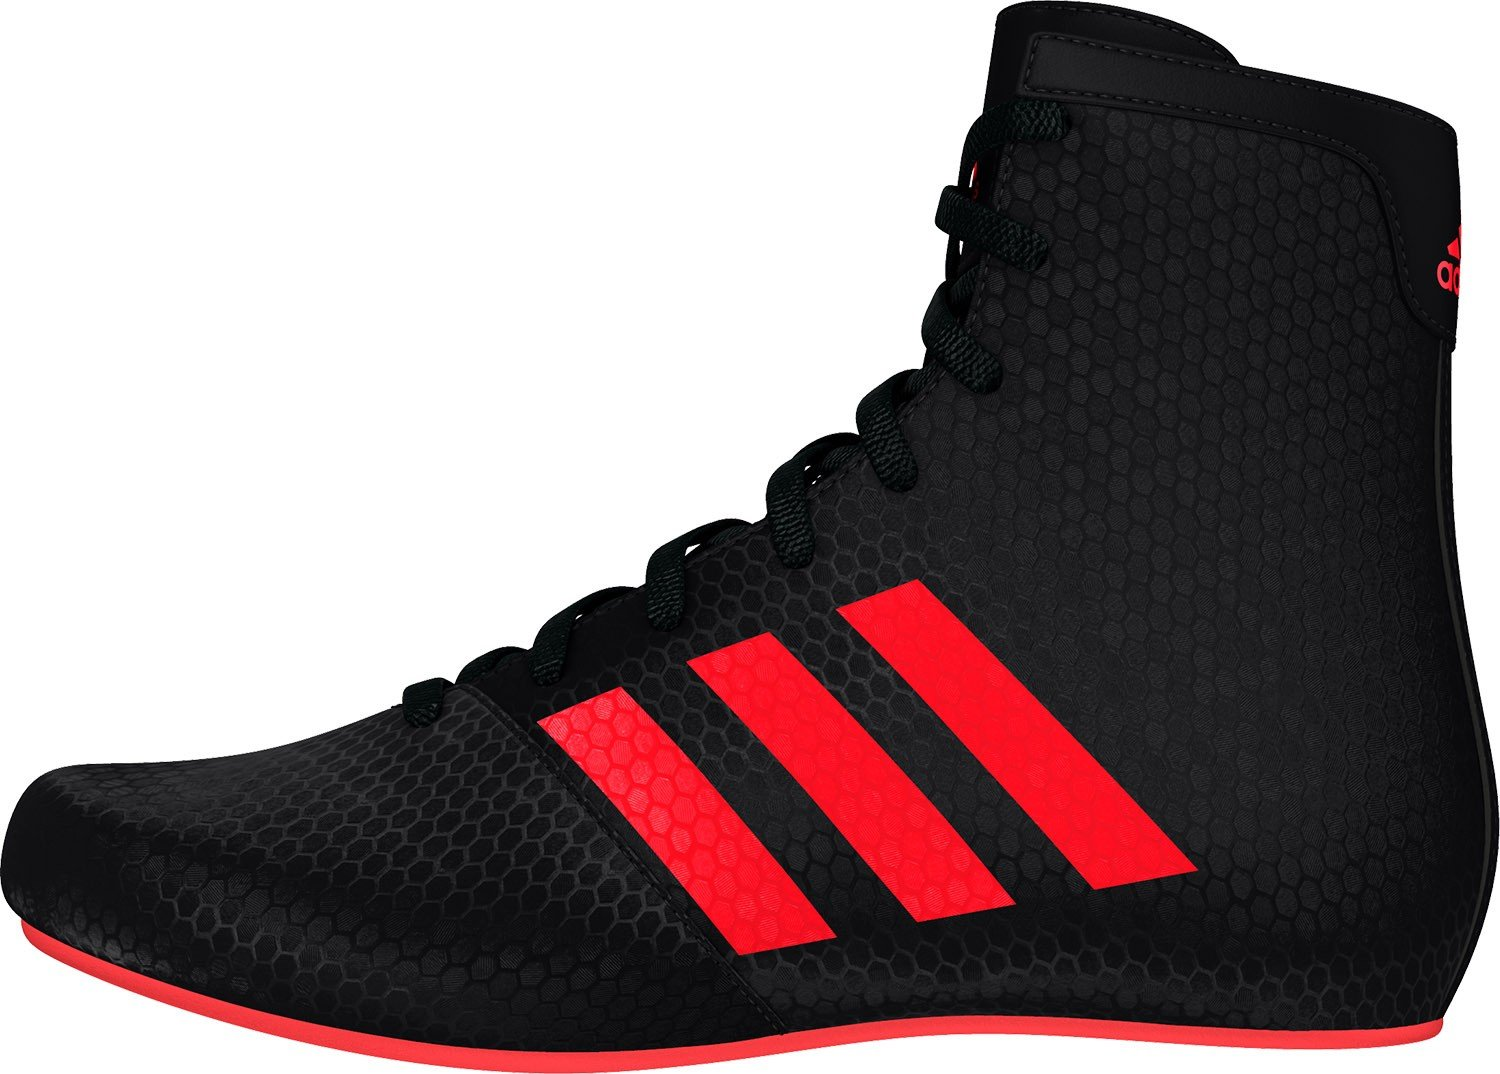 Adidas KO Legend 16.2 Kids Black Shoes Junior Boxing Boots: Amazon.co.uk:  Sports & Outdoors